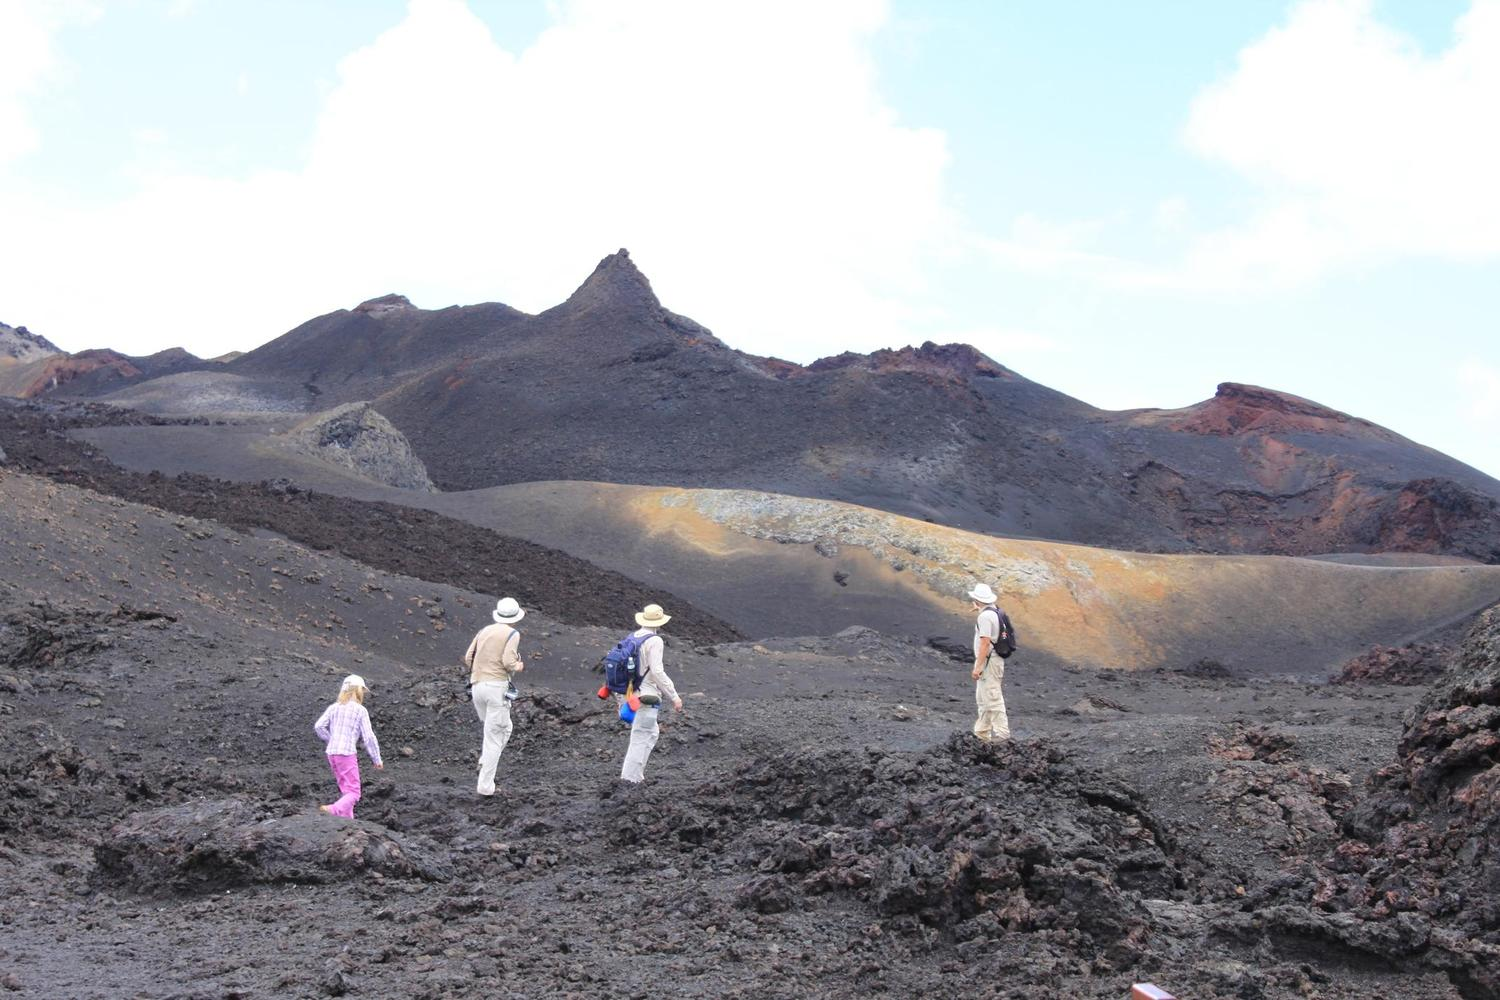 Walking across the crater of Sierra Negra, Isabela Island